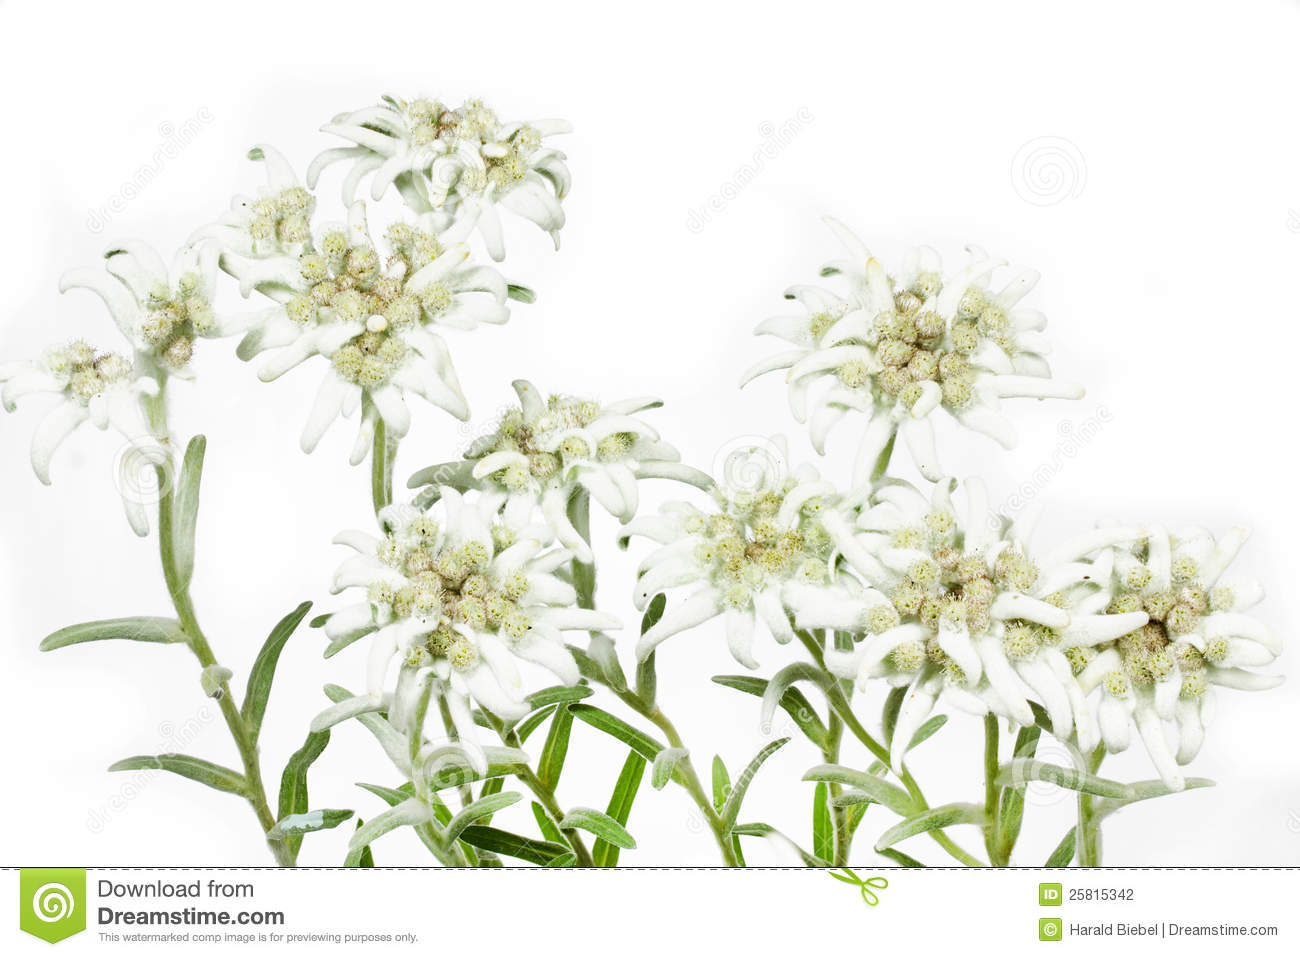 Blooming Edelweiss Flower on white